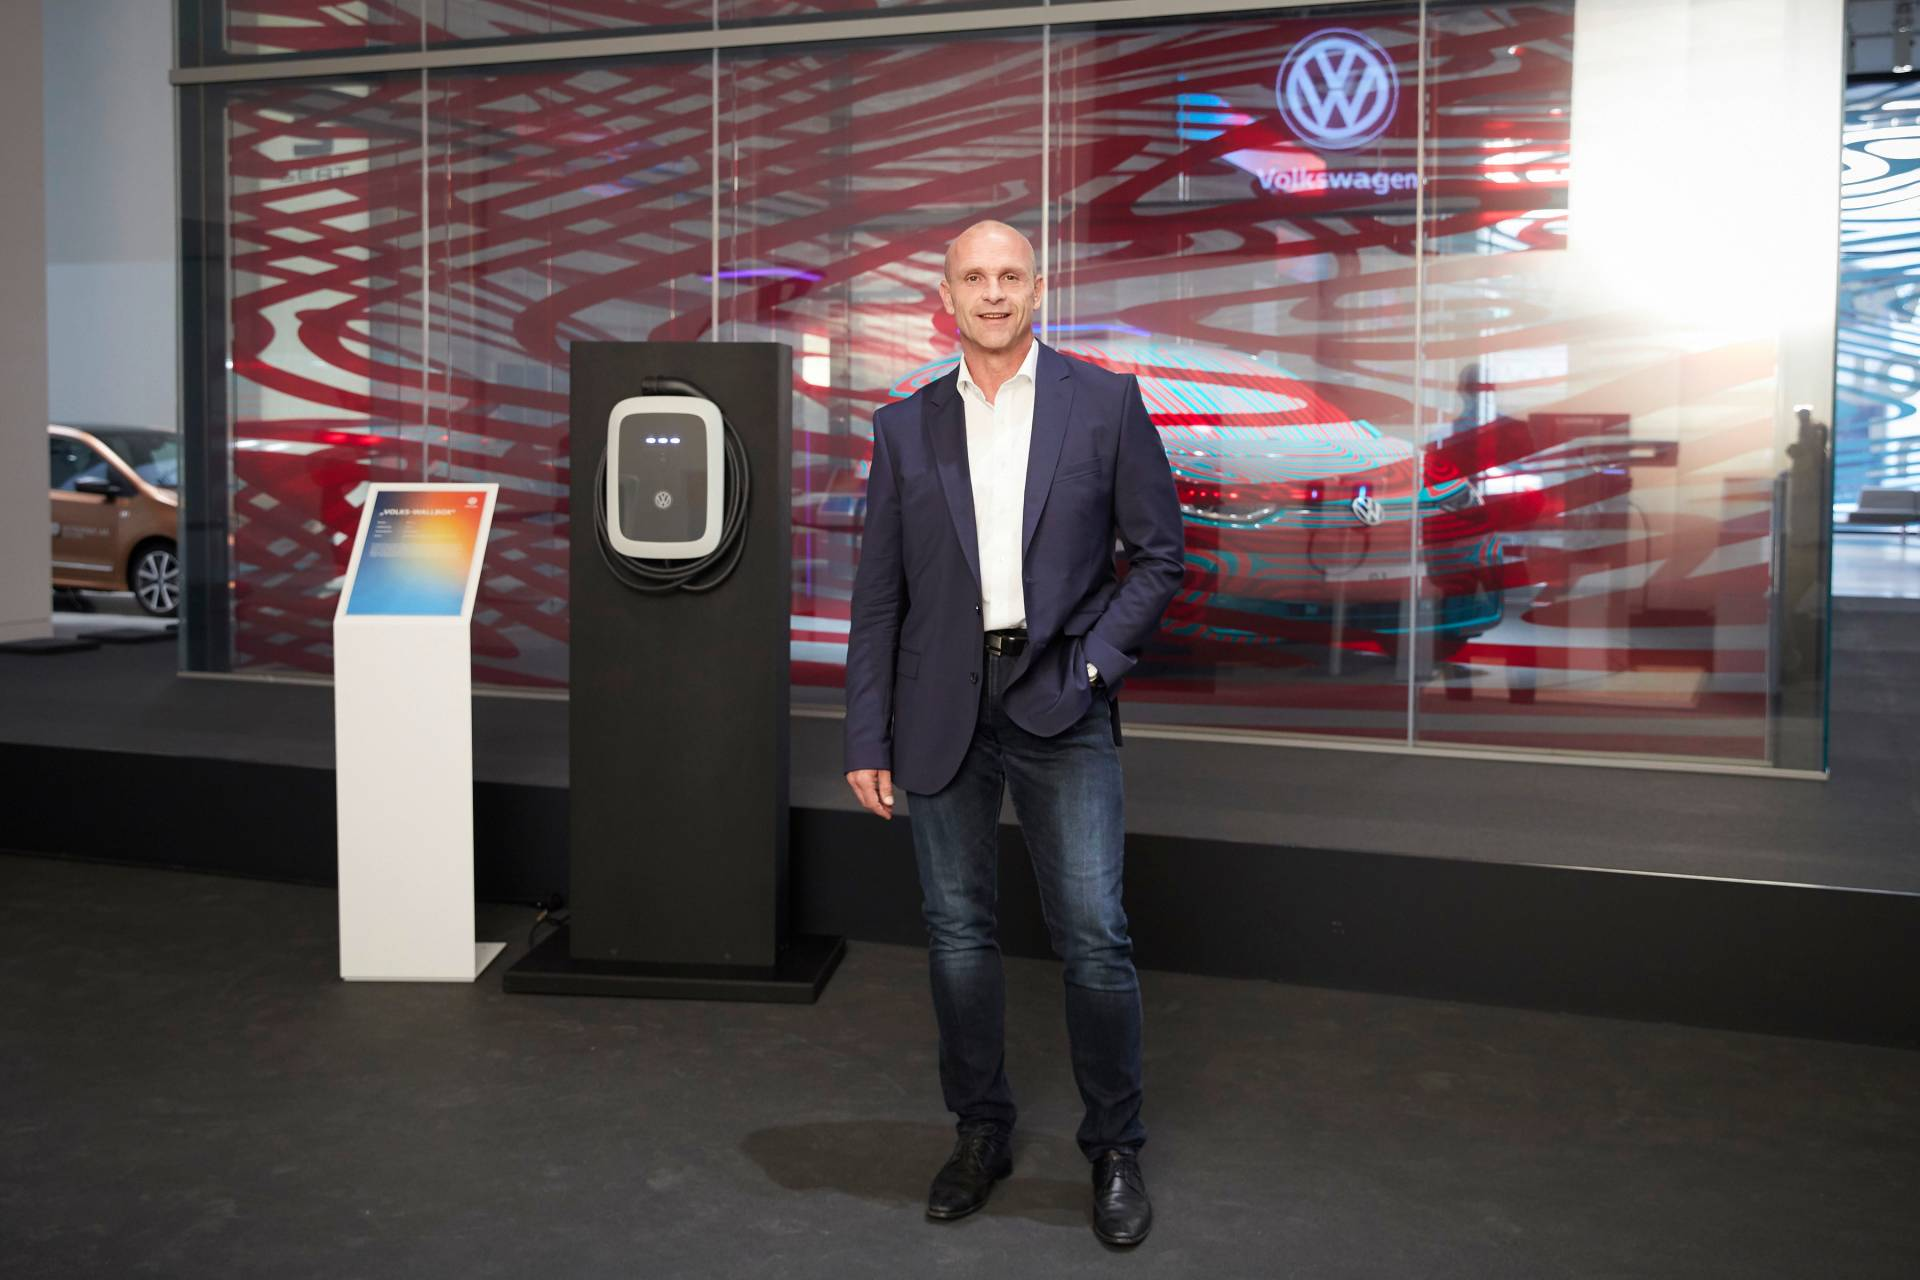 VW-europe-ev-chargers-network-3